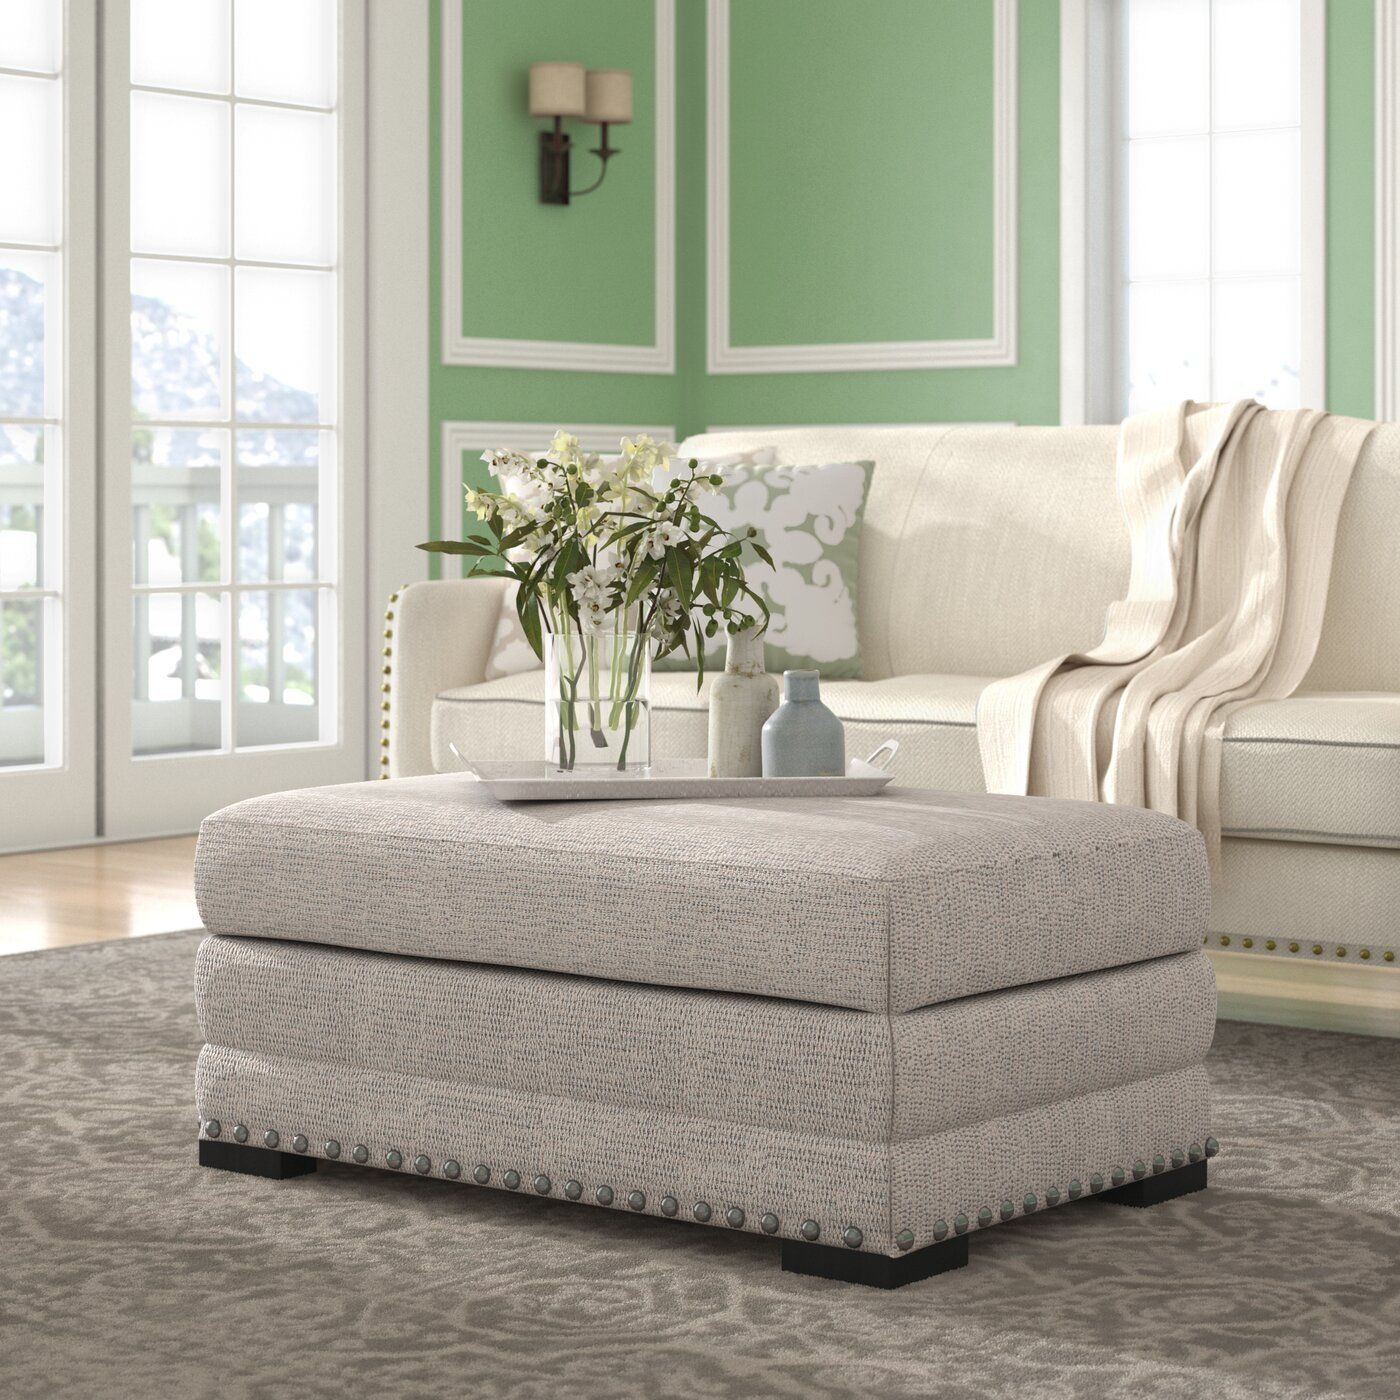 Swanigan Storage Ottoman Ottoman, Furniture, Upholstered